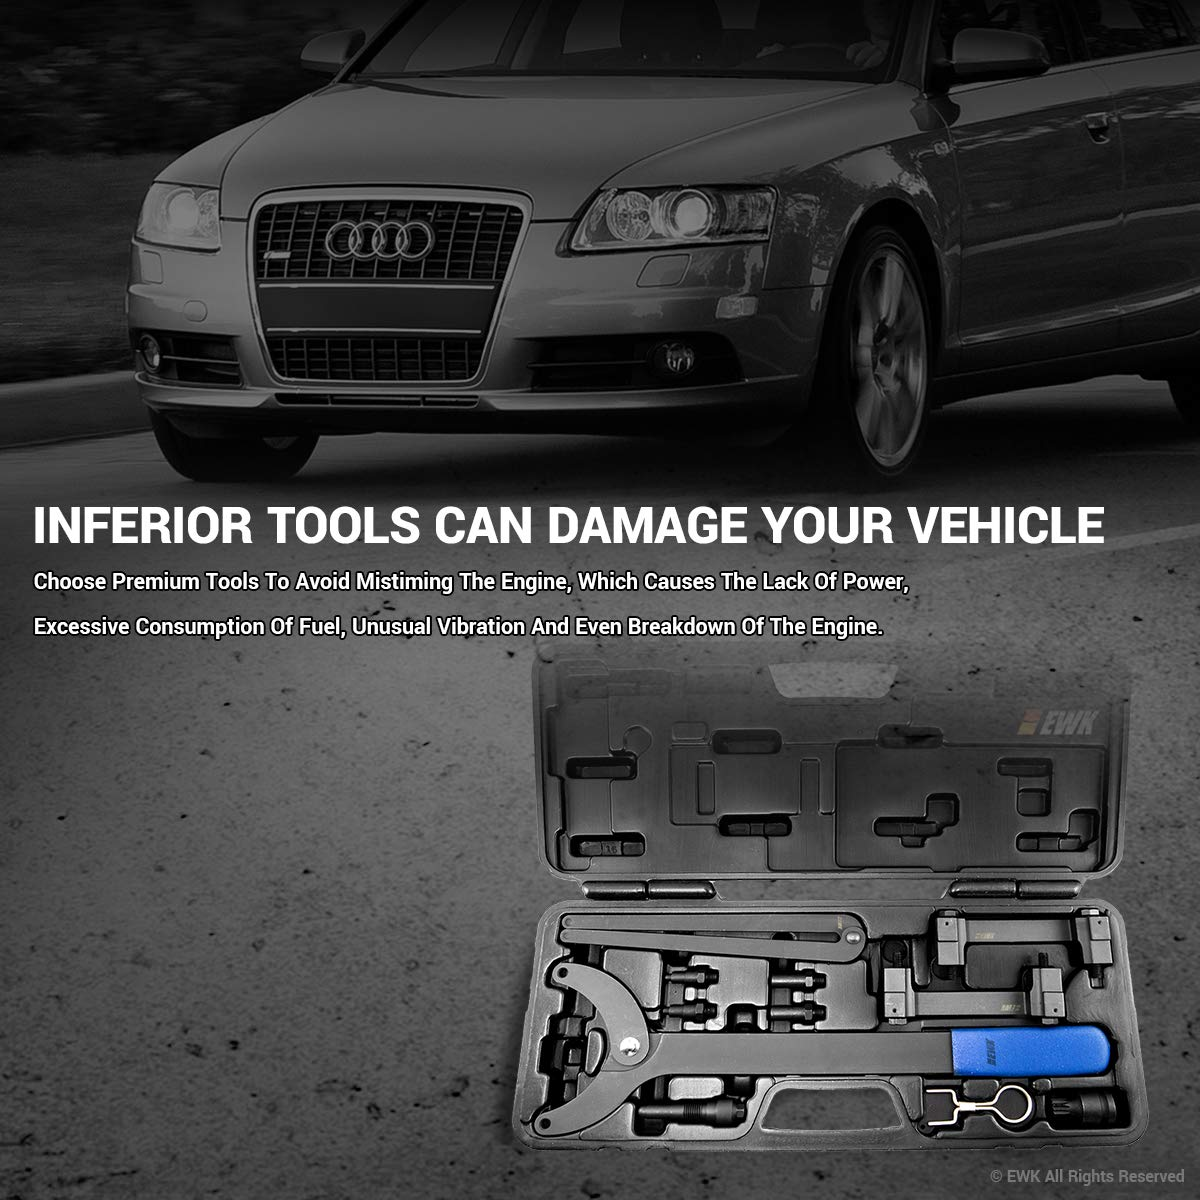 EWK Timing Tool Kit FSI Chain Engine for Audi A4 A6 A8 3.2 Liter V6 by EWK (Image #4)